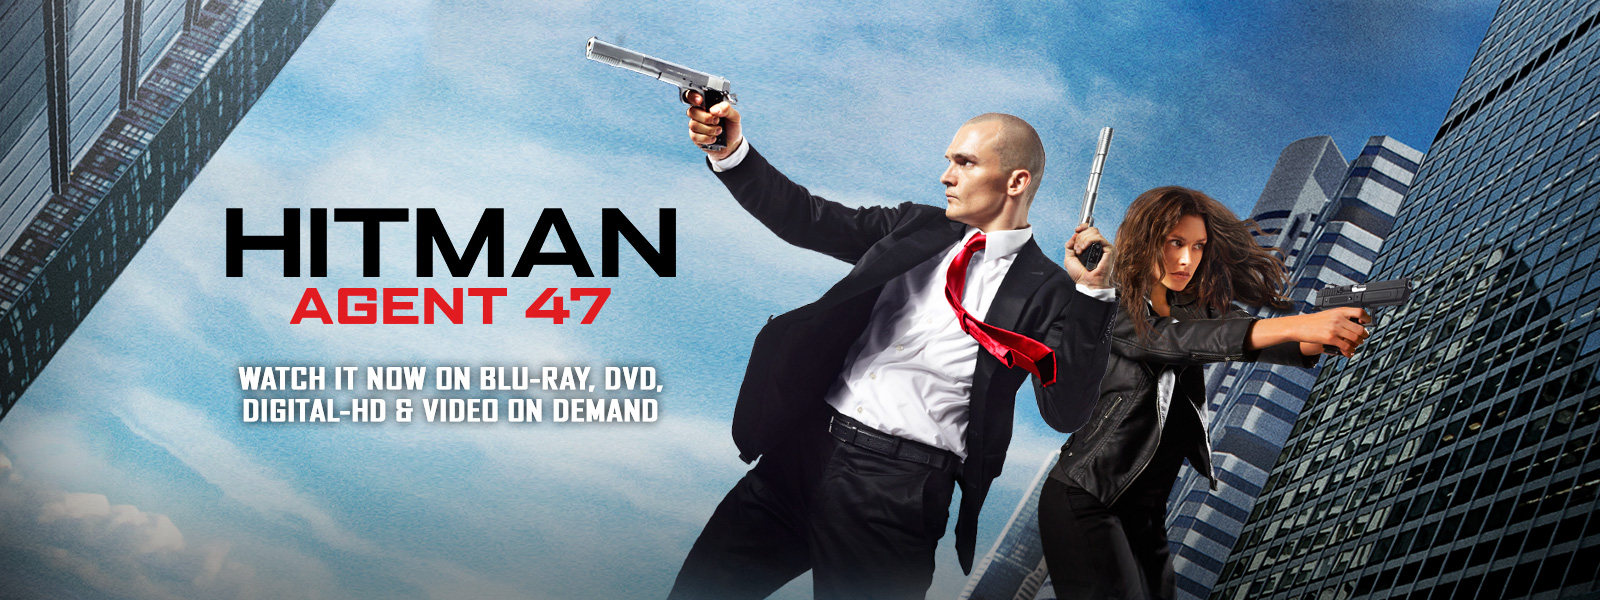 Hitman Agent 47 - Watch it now on Blu-ray, DVD, Digital HD & Video on Demand